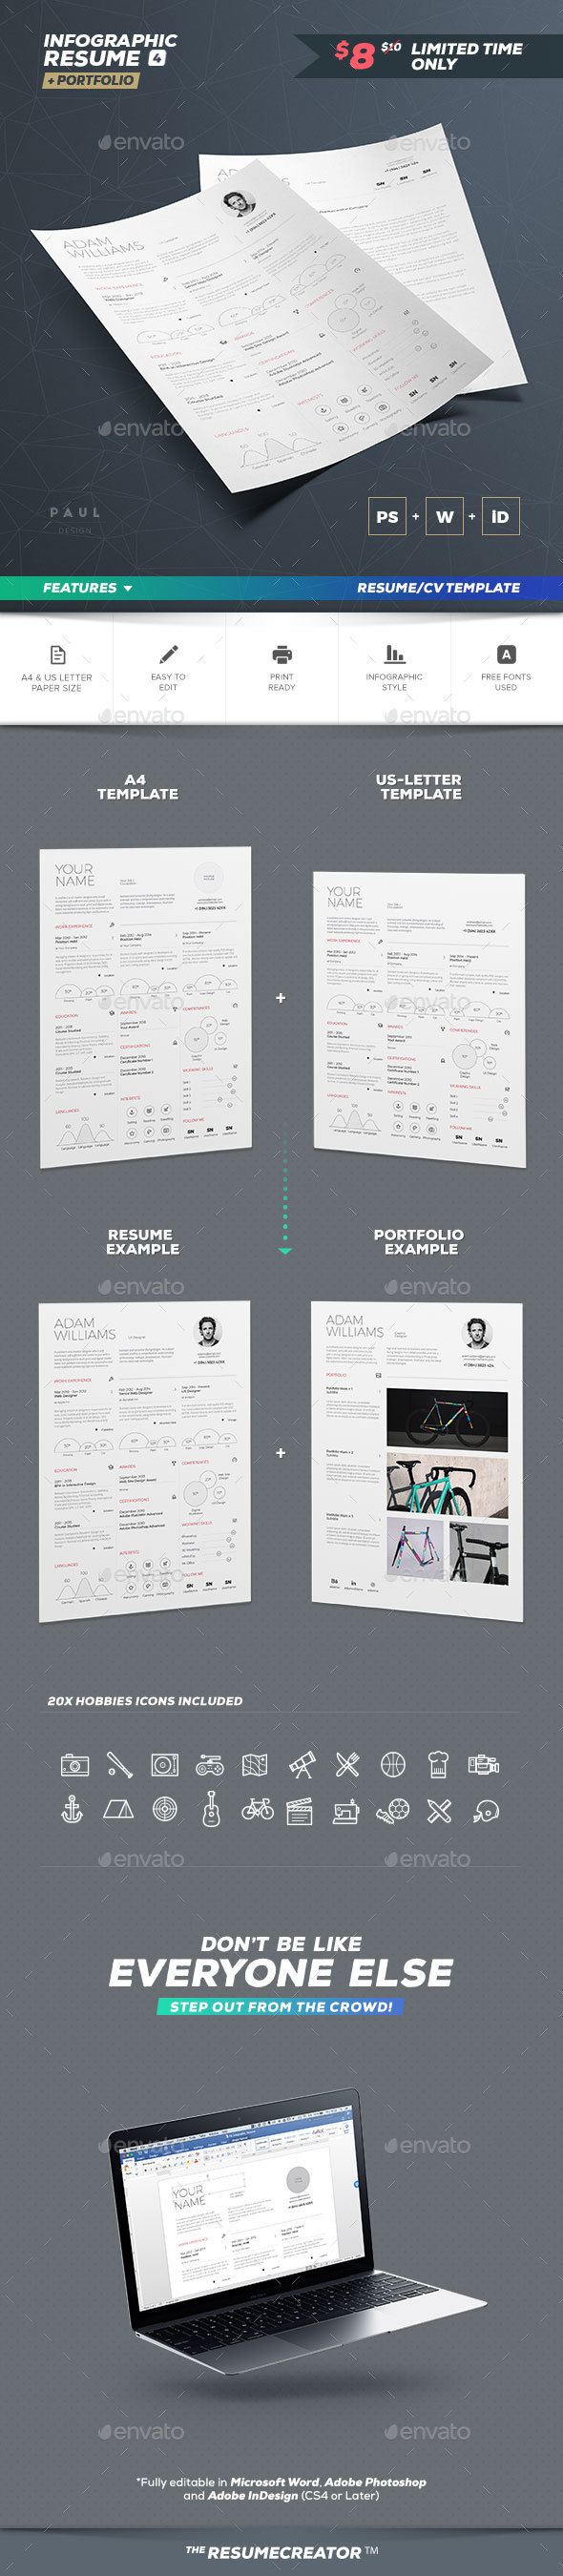 Infographic Resume Vol. 4